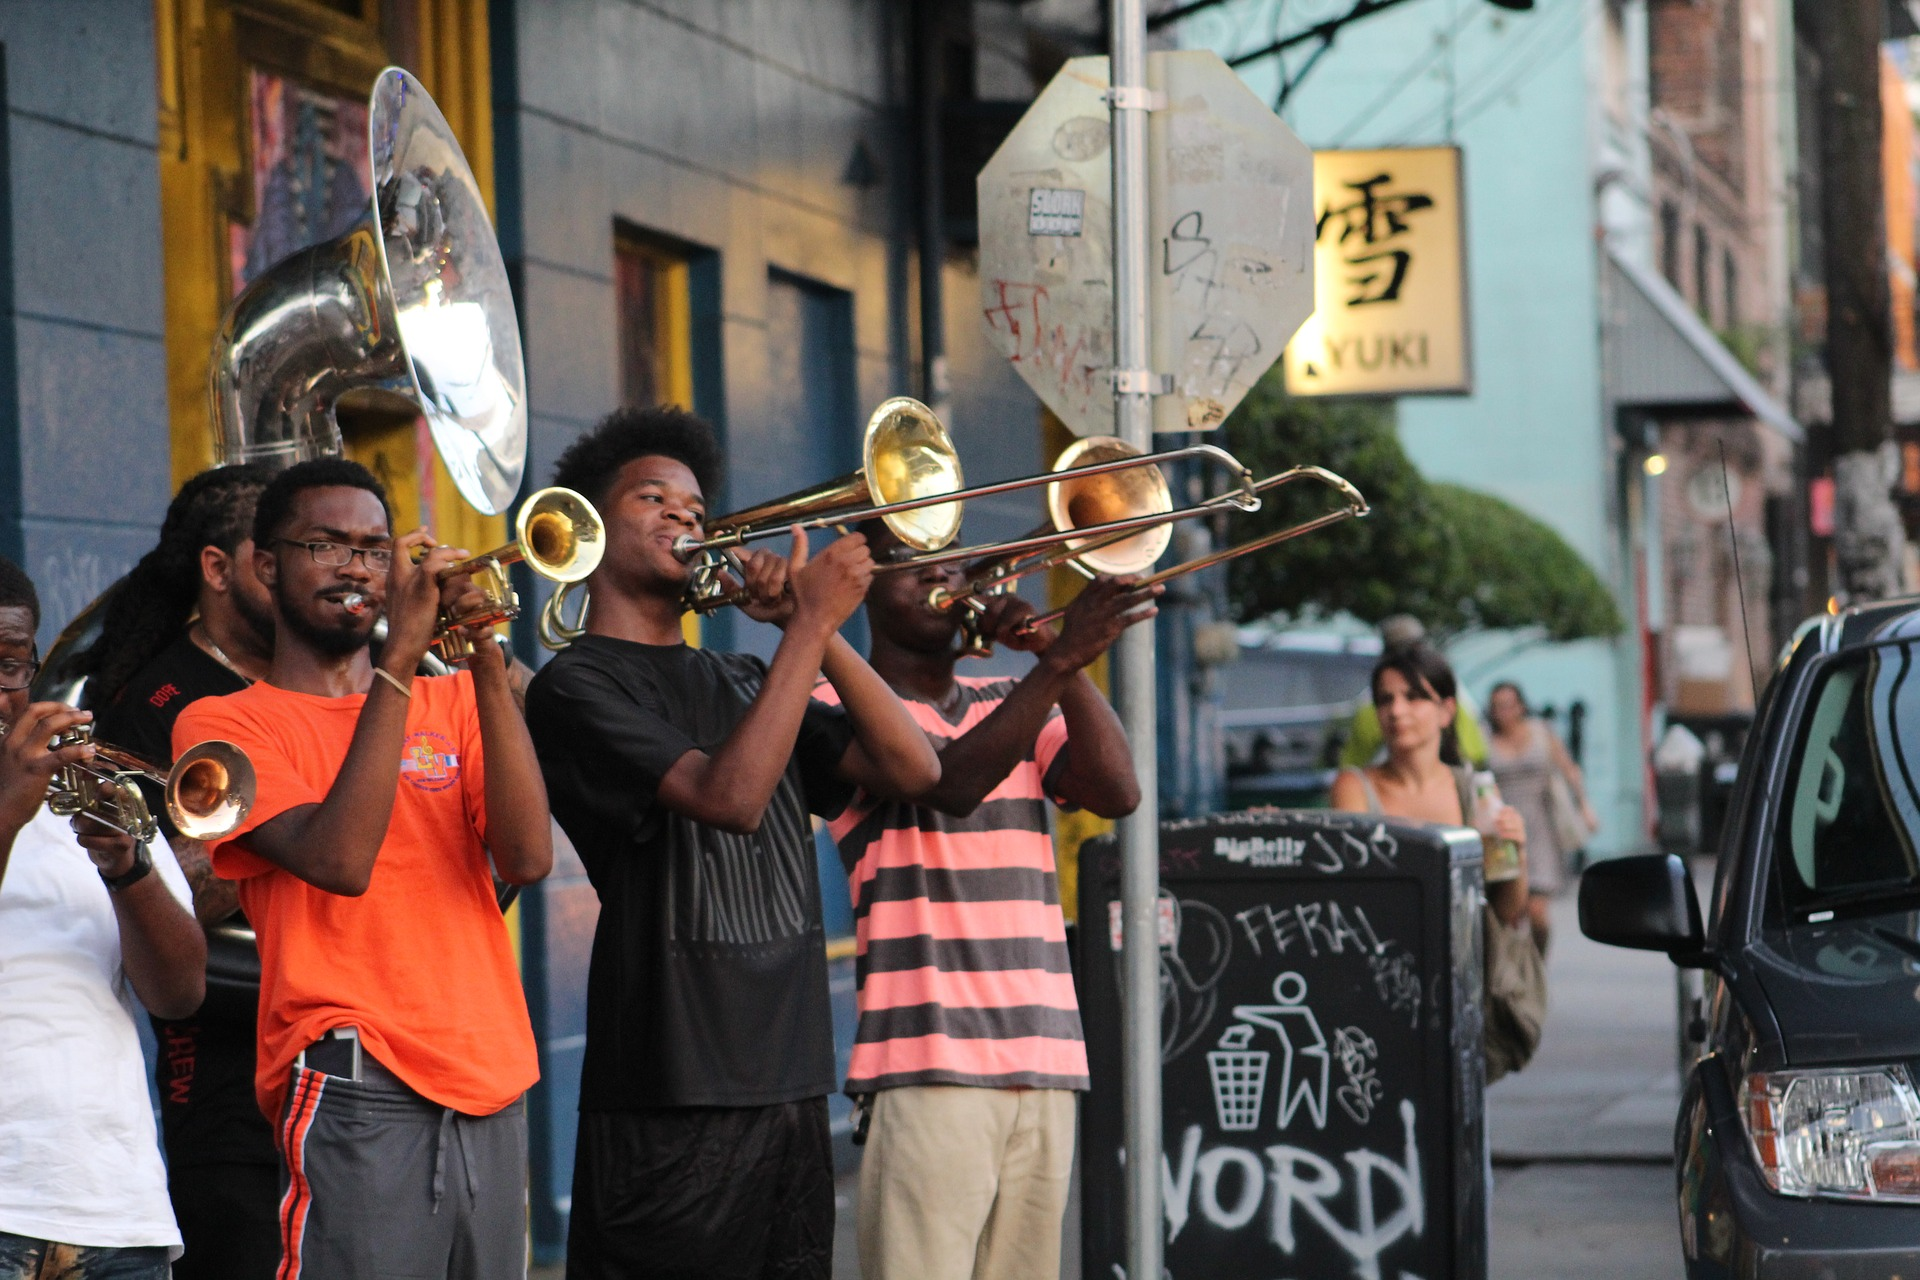 Live act, New Orleans